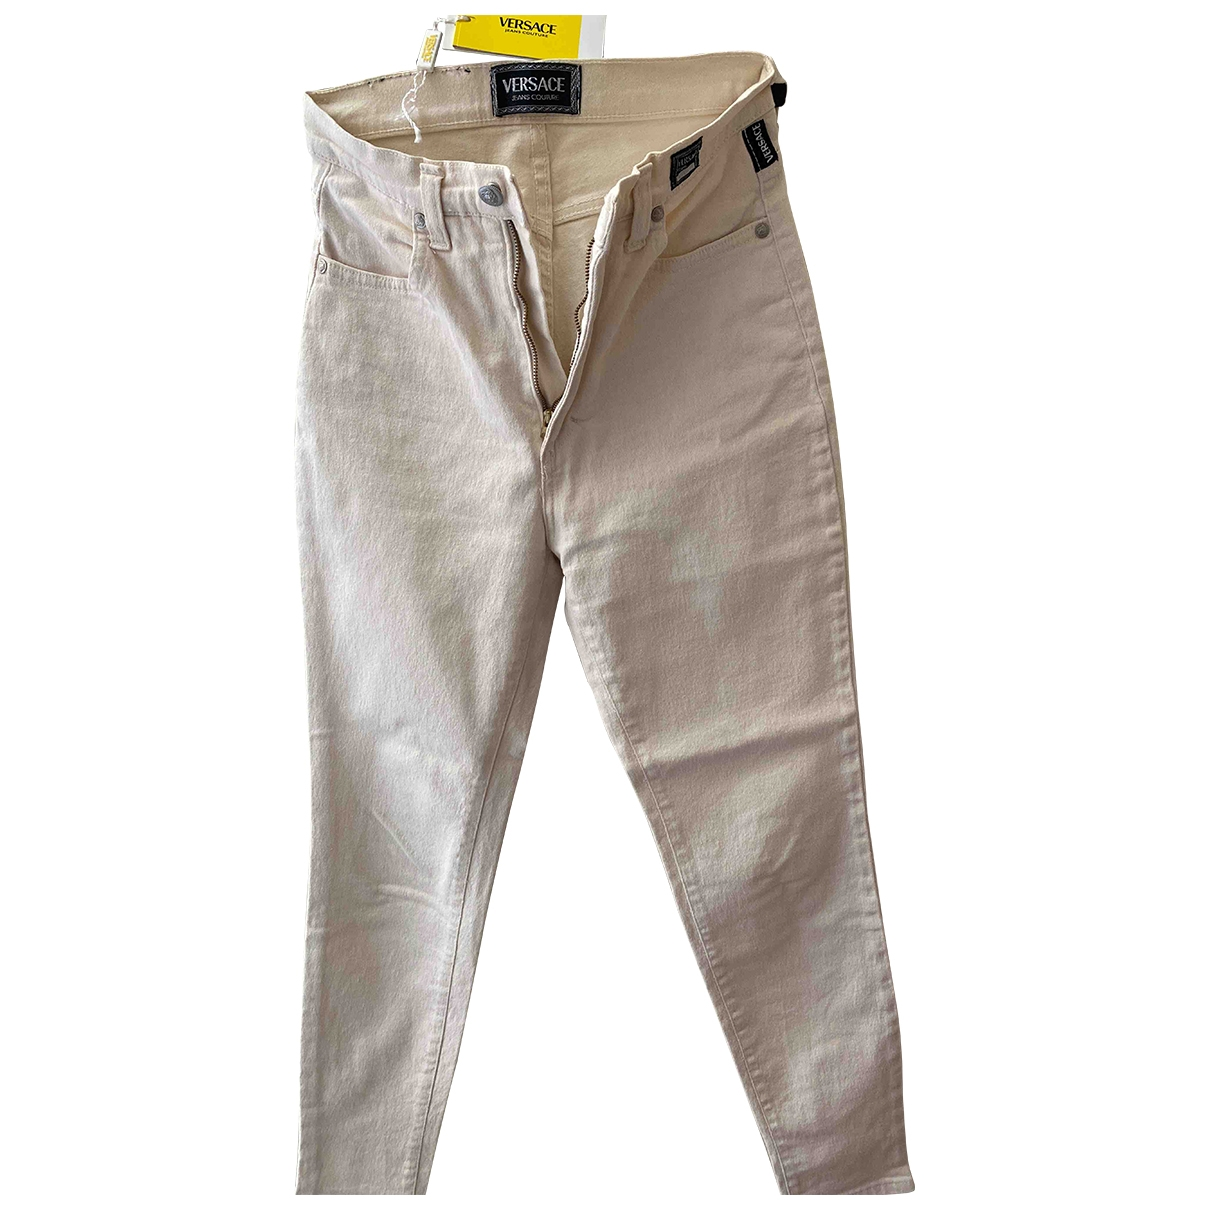 Versace Jeans \N White Cotton - elasthane Jeans for Women 30 US